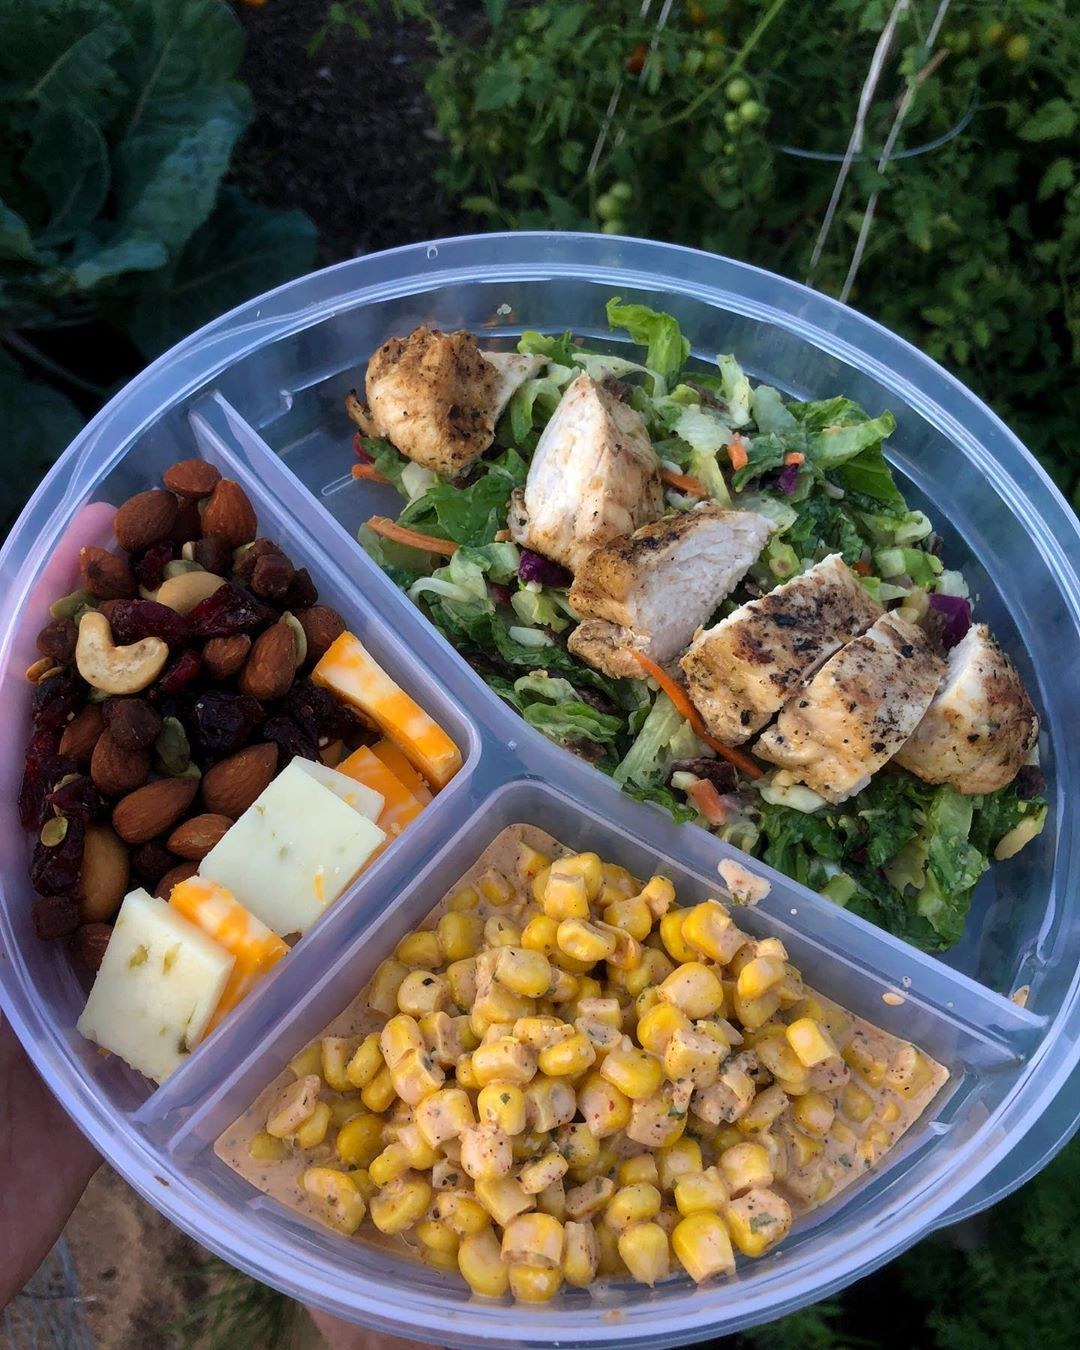 First time ever meal prepping: ✅ My sophomore year of college starts tomorrow so what better way to get ready than to meal prep! This is one of the many meals I prepped (trail mix, southwest avocado salad, grilled chicken, and elote) . . .   #mealprep     #easymealprep     #yum     #health     #fitness     #physicalhealth     #mentalhealth     #wor